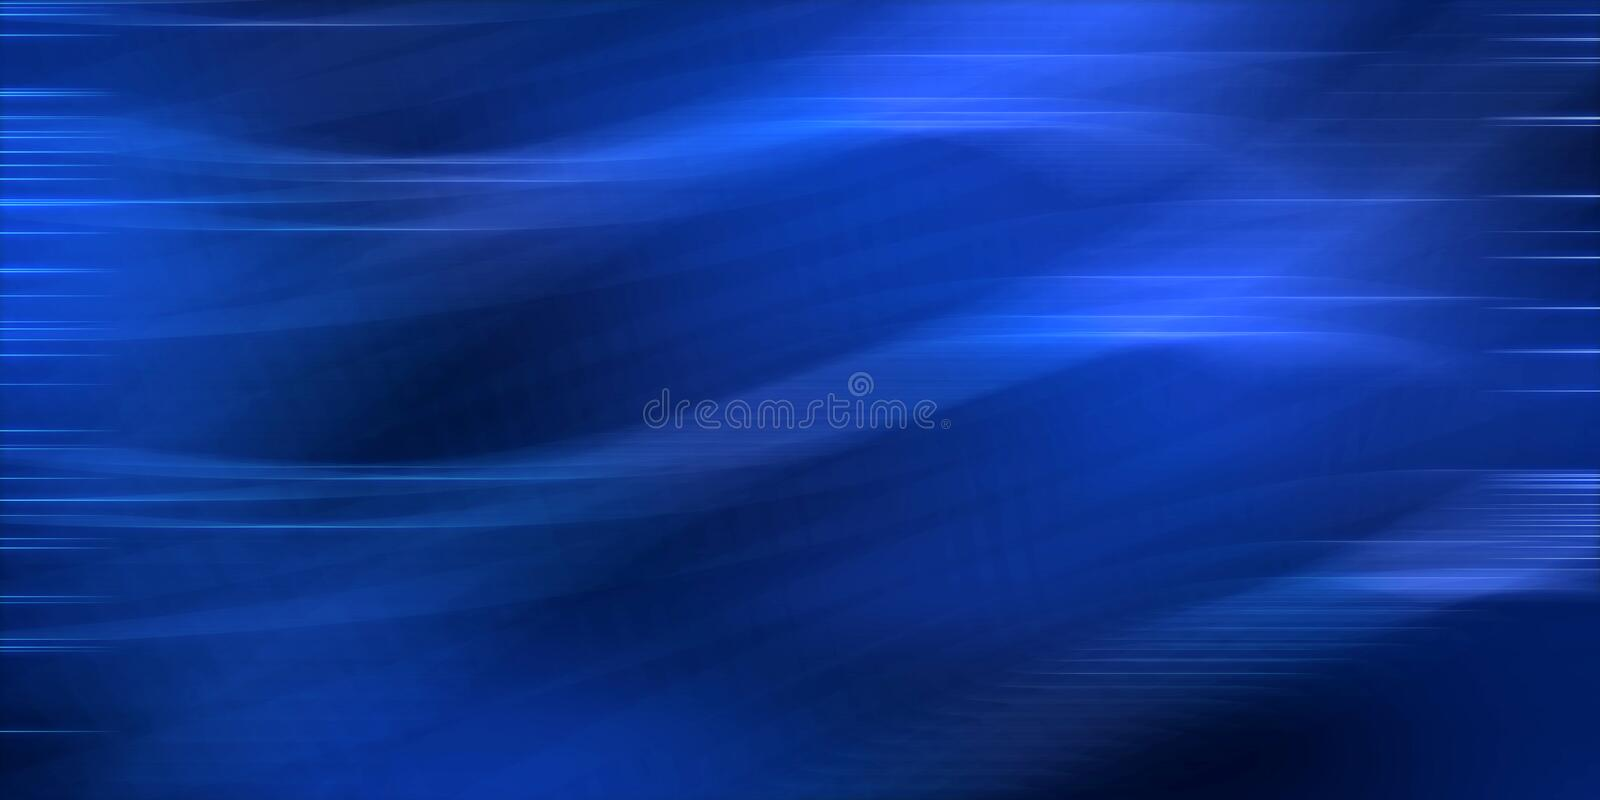 Blue wavy abstract image graphic background. Abstract blue background computer generated image